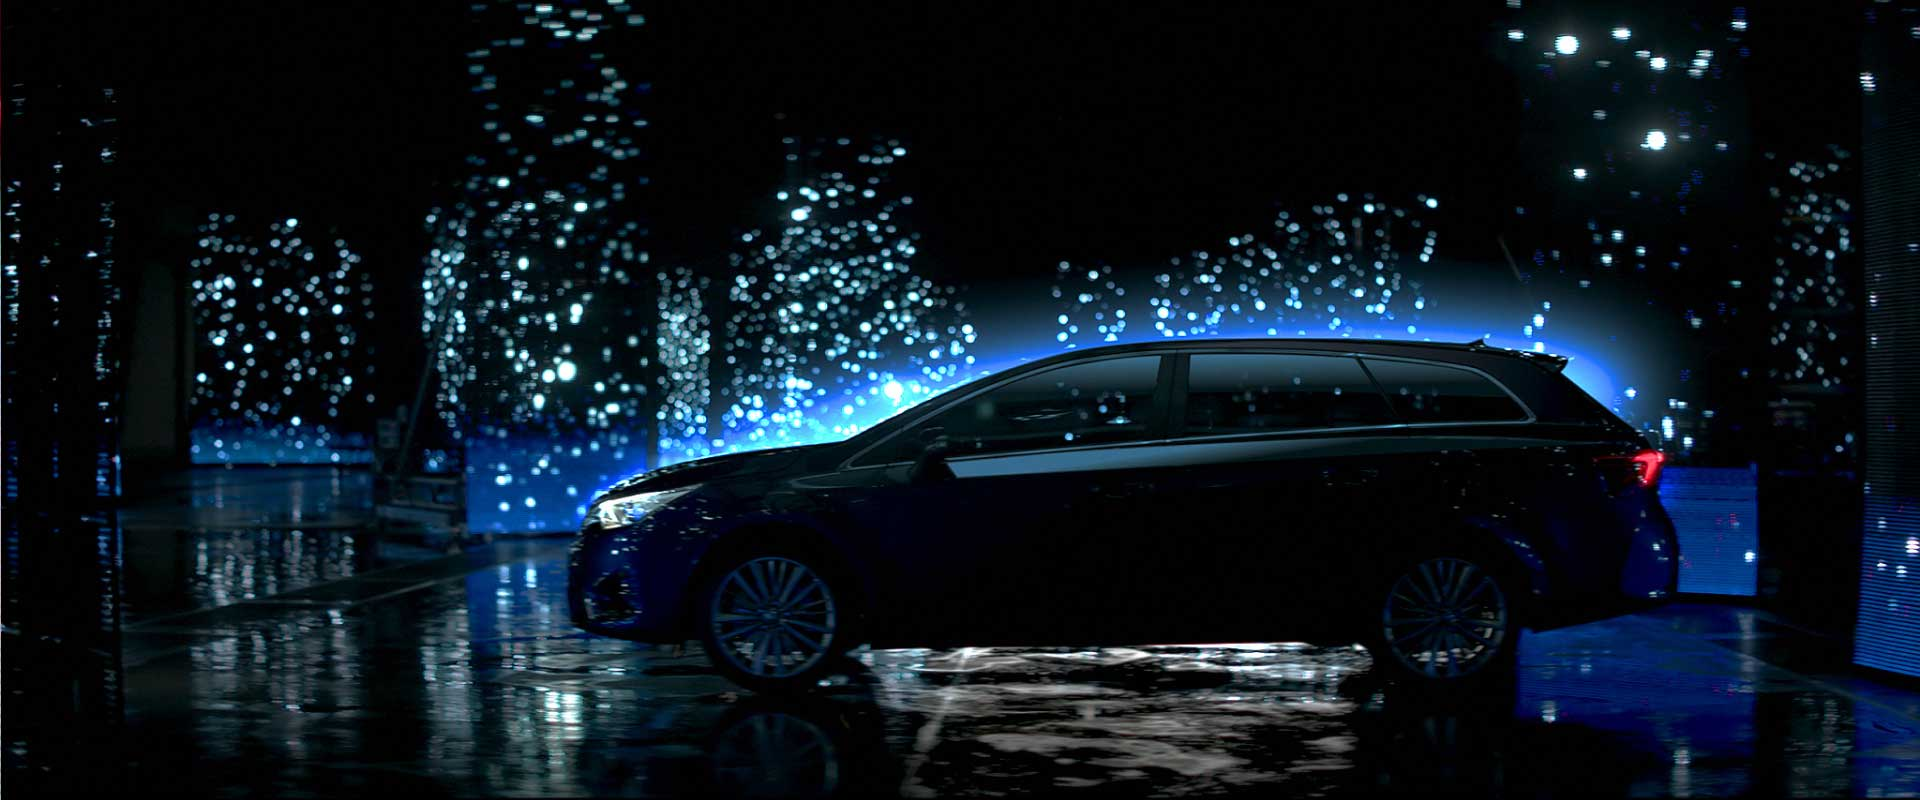 Sideview car. Still from Toyota Avensis - Commercial